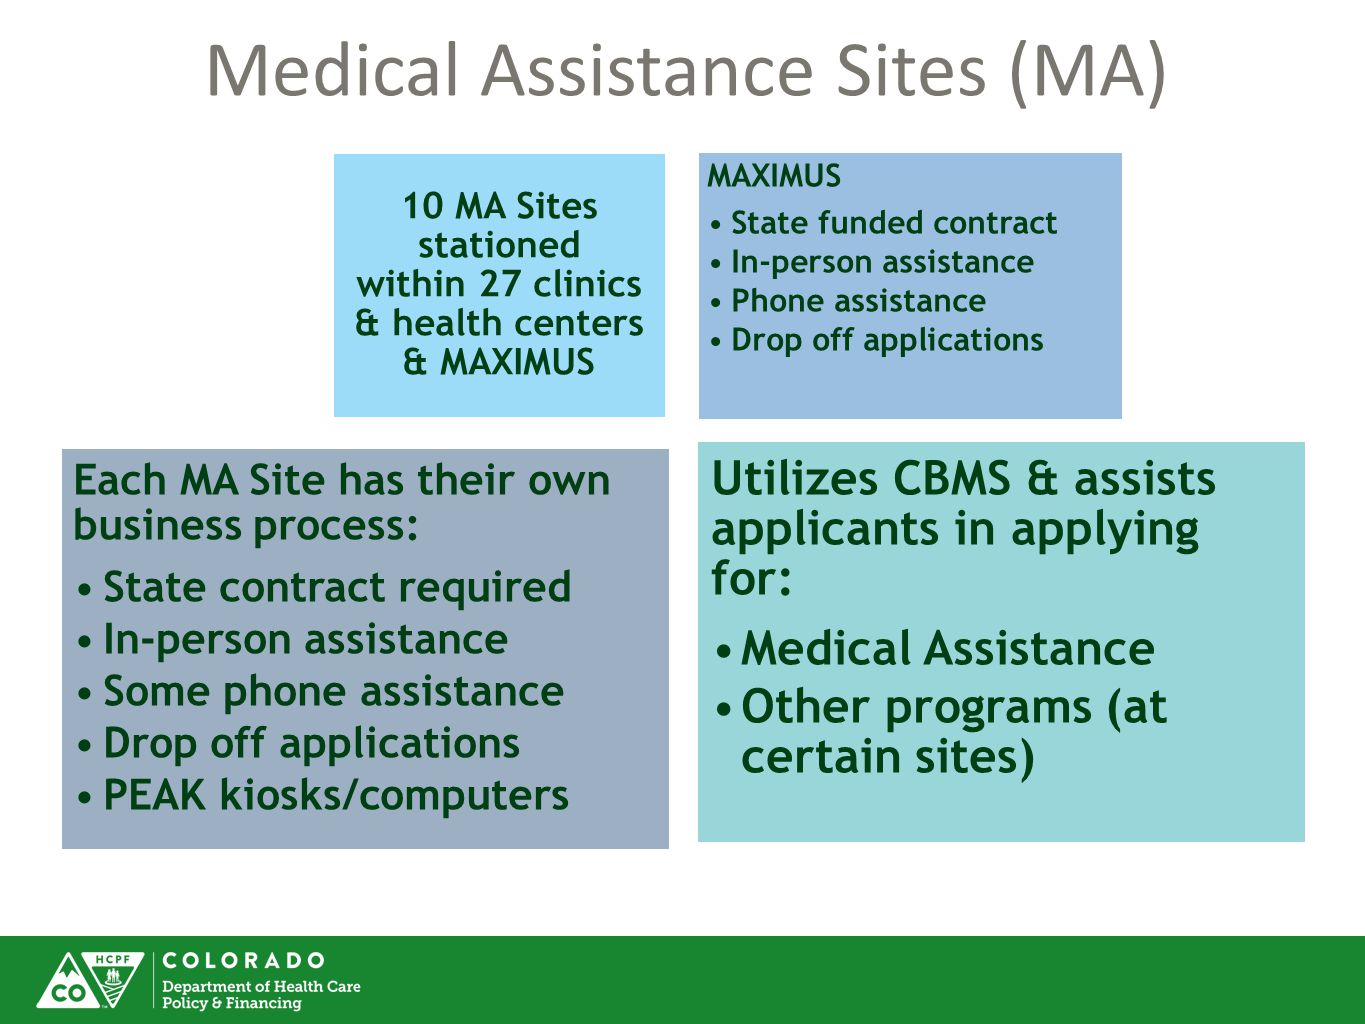 10 MA Sites stationed within 27 clinics & health centers & MAXIMUS MAXIMUS State funded contract In-person assistance Phone assistance Drop off applications Each MA Site has their own business process: State contract required In-person assistance Some phone assistance Drop off applications PEAK kiosks/computers Utilizes CBMS & assists applicants in applying for: Medical Assistance Other programs (at certain sites) Medical Assistance Sites (MA)